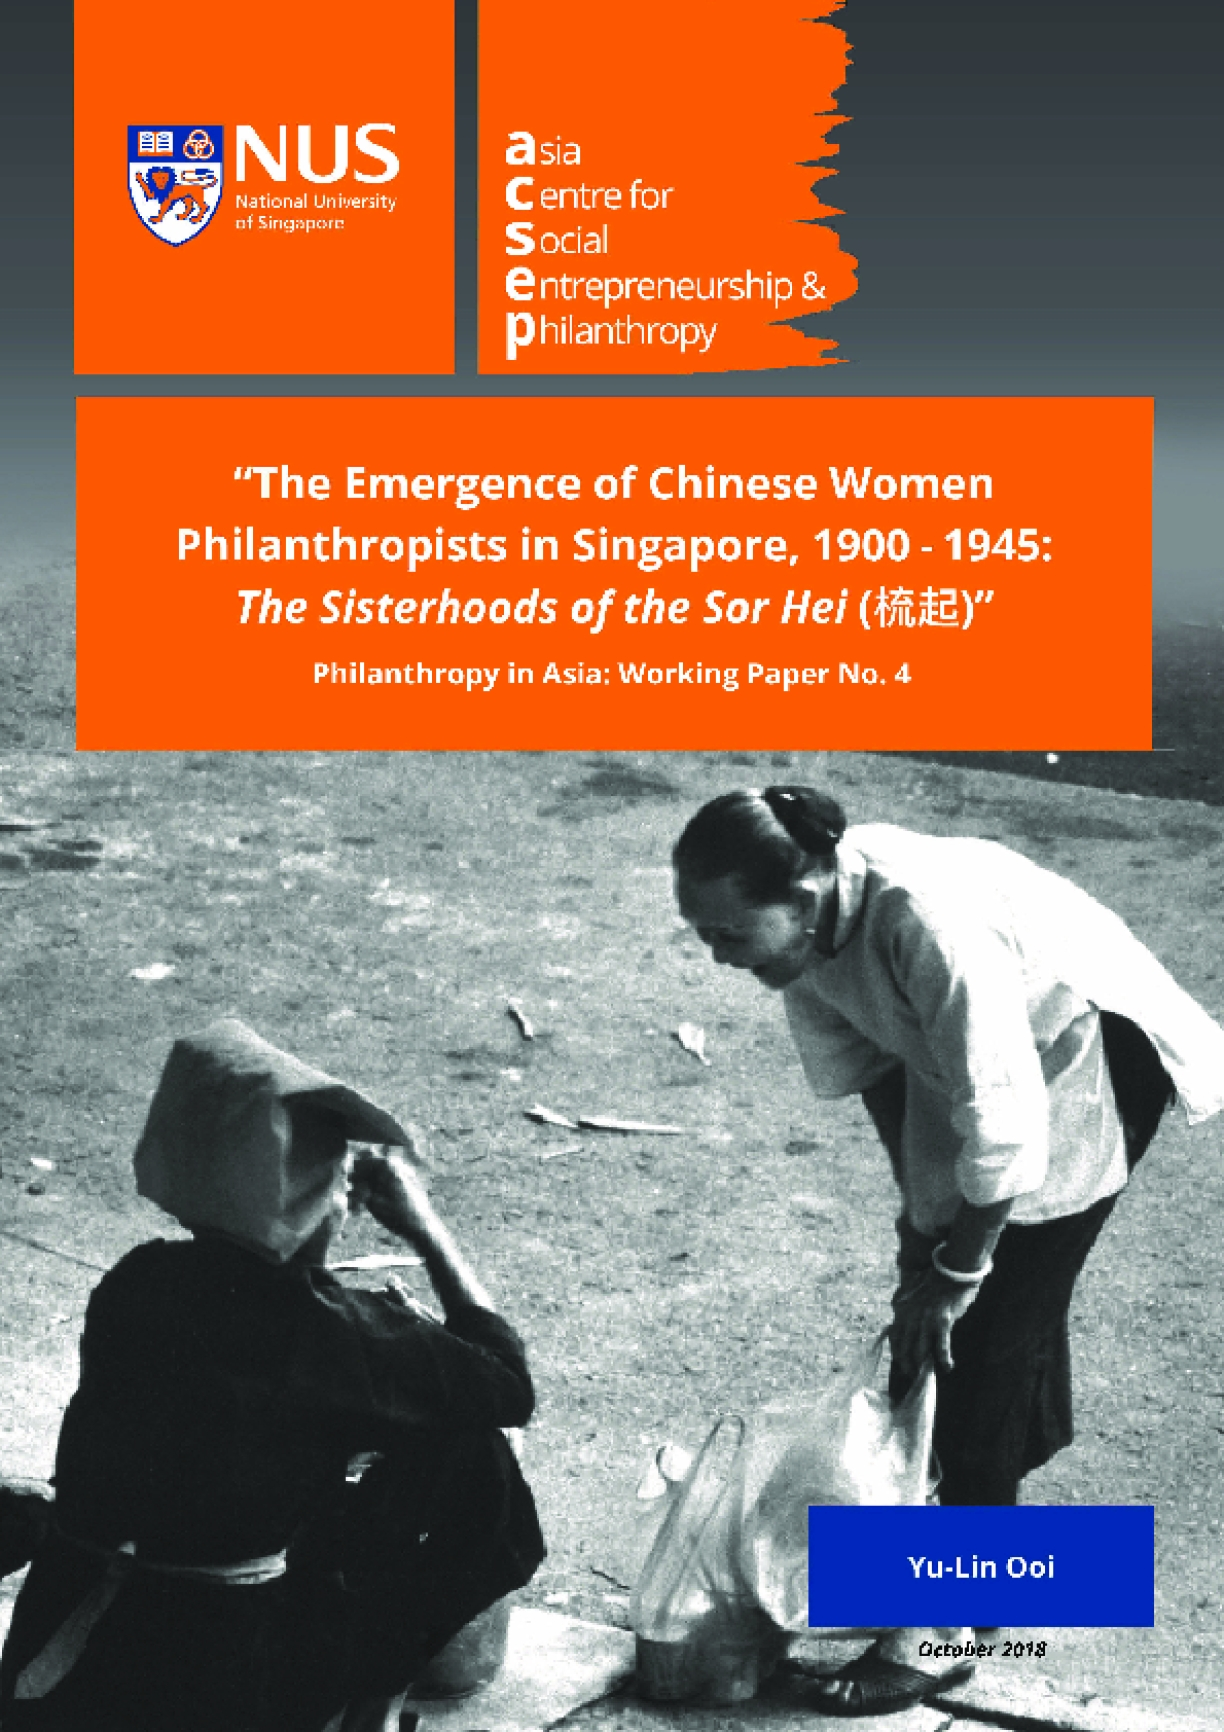 """Philanthropy in Asia: Working Paper No.4  The Emergence of Chinese Women Philanthropists in Singapore, 1900-1945: The Sisterhoods of the """"Sor Hei"""""""